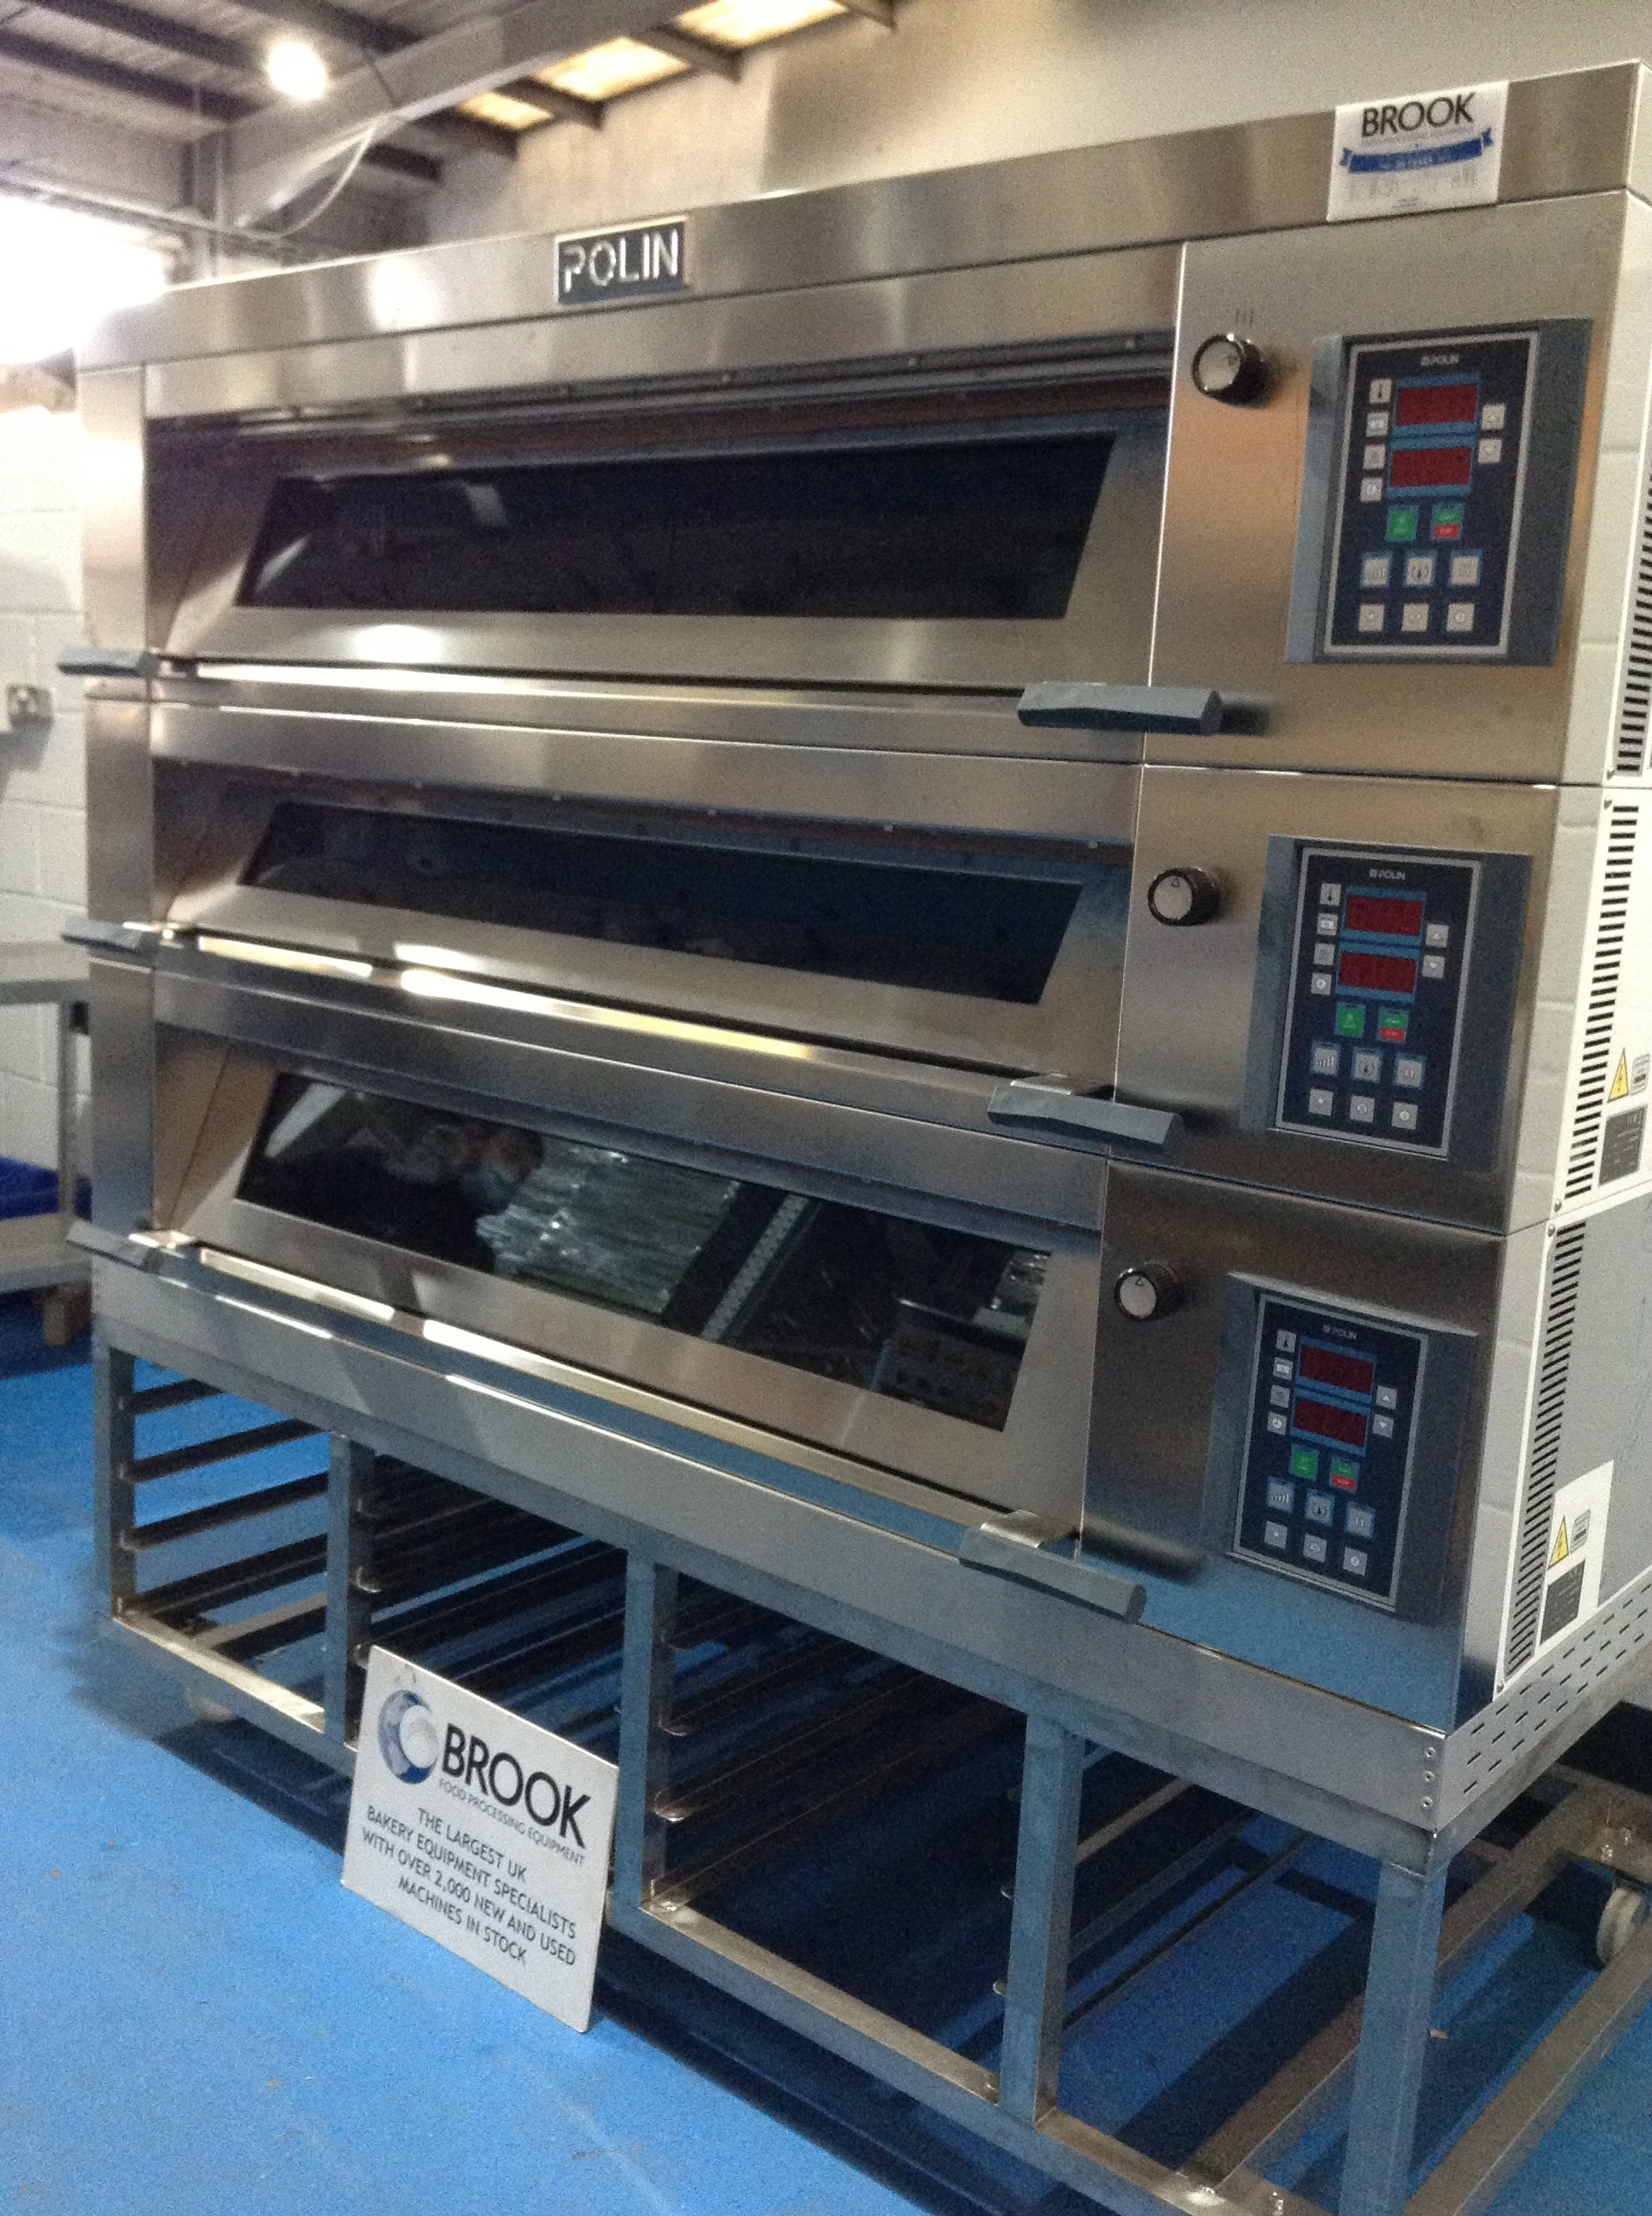 NEW EX DISPLAY POLIN STRTATOS 3 DECK OVEN WITH MIST STEAM